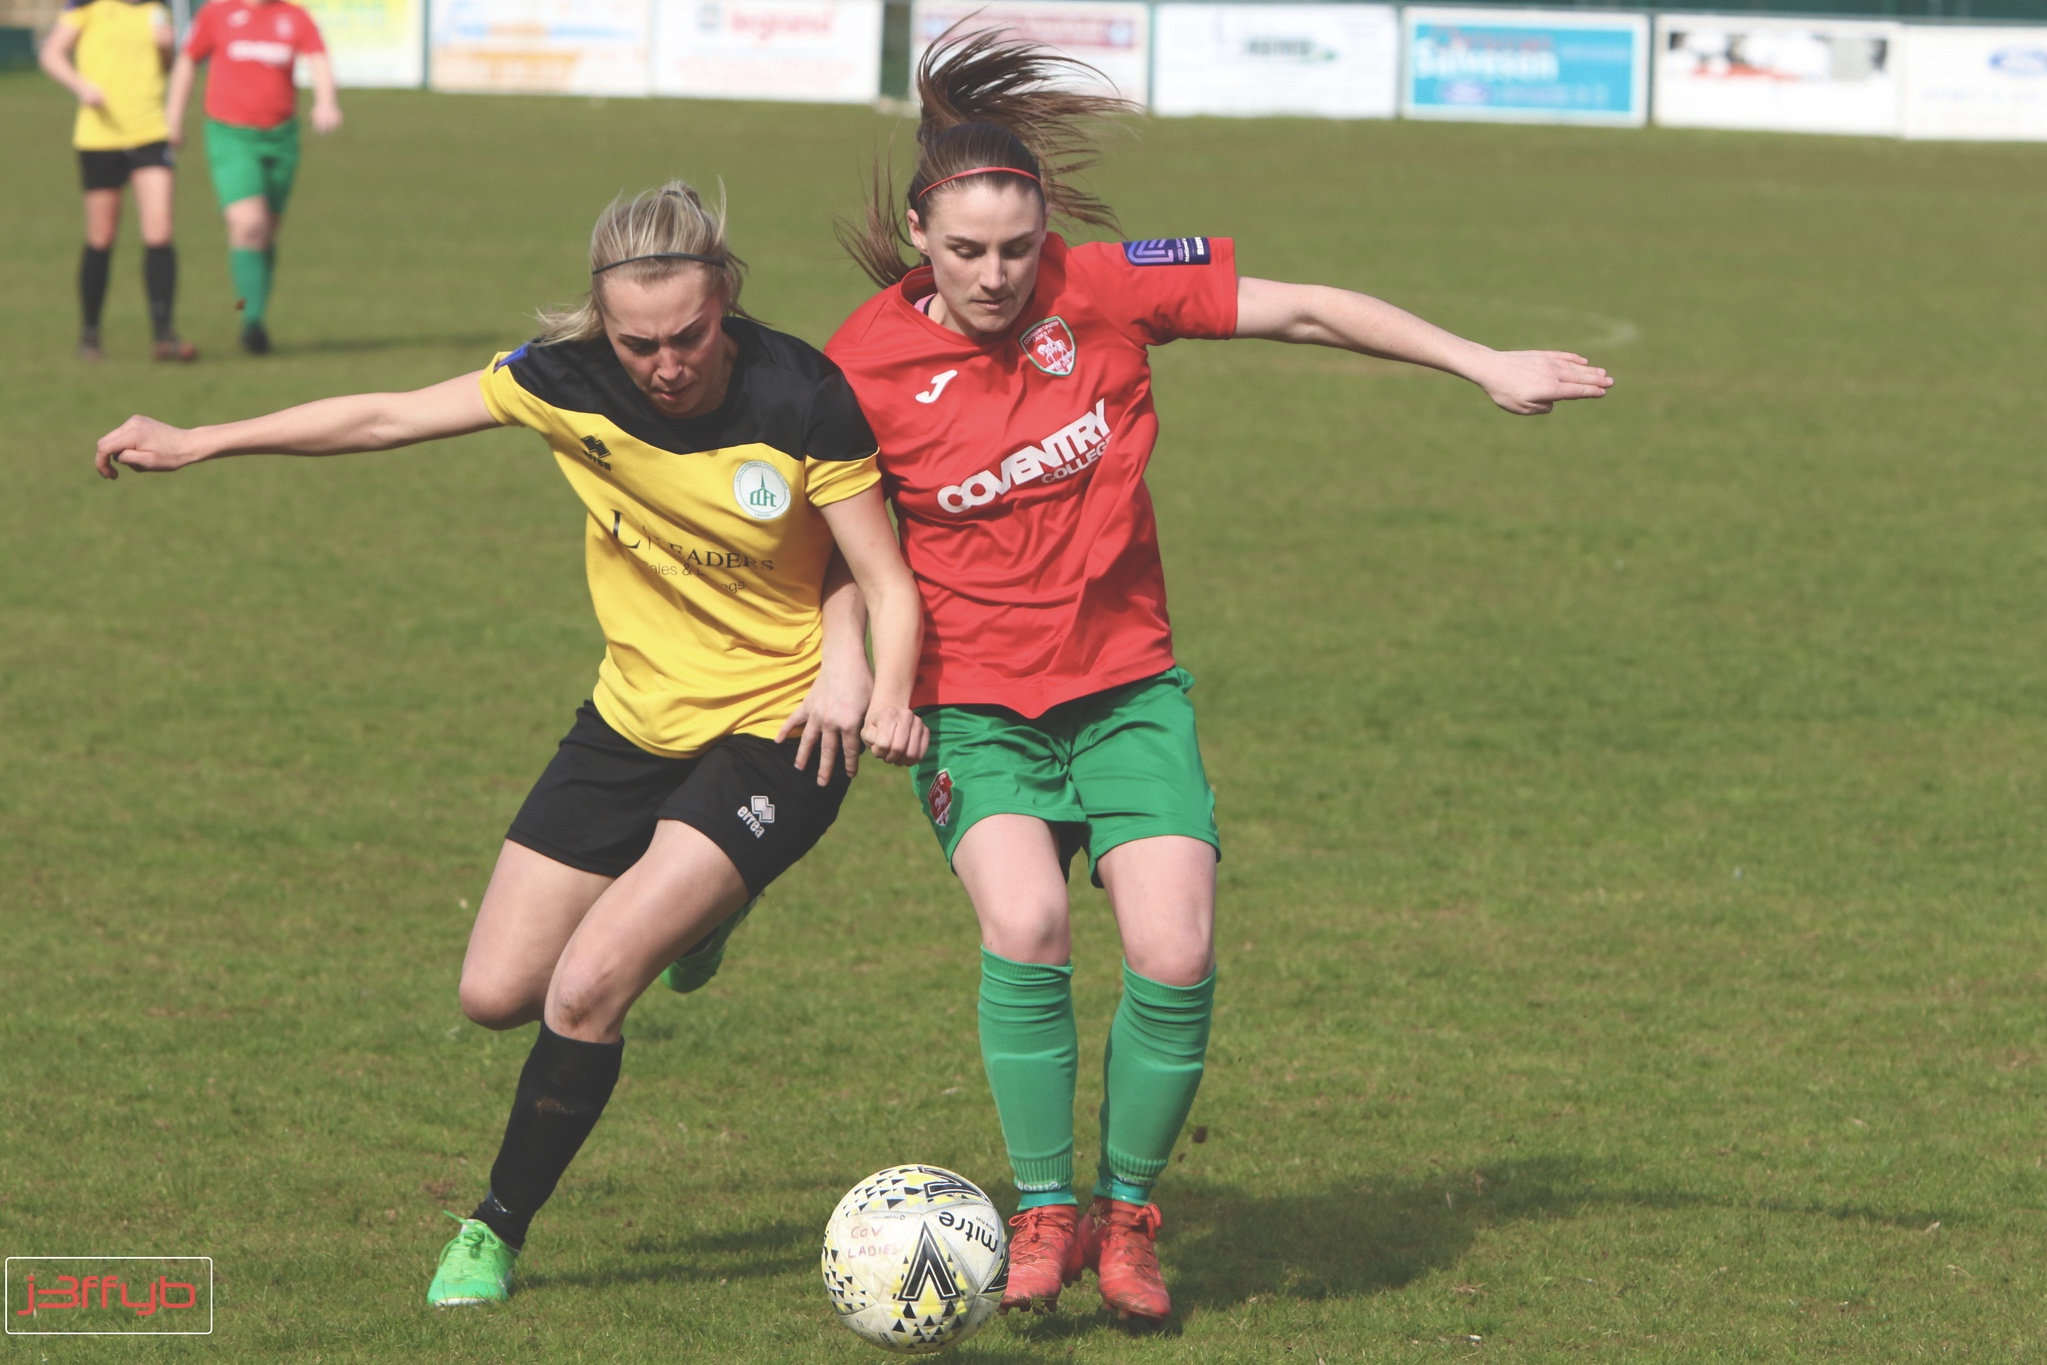 Hughes competes with Chichester's Tash Stephens. Photo by @j3ffyb